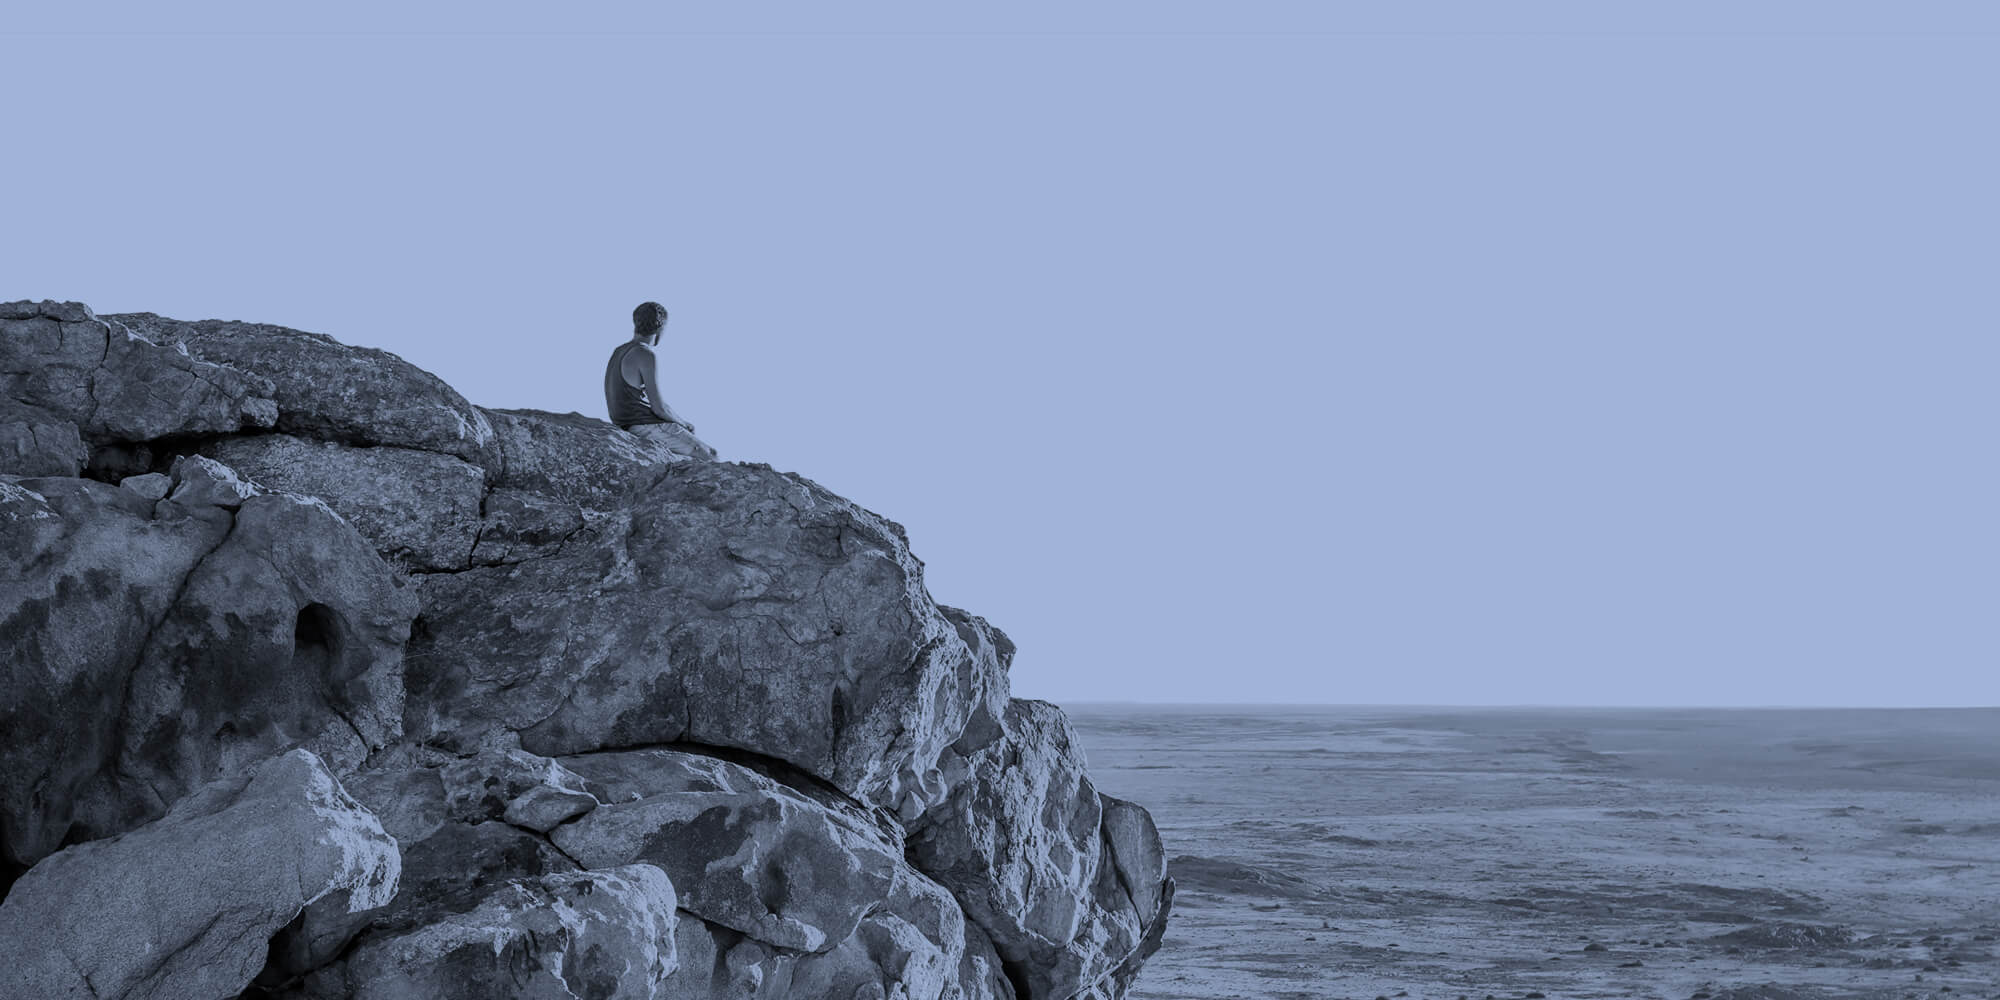 Sitting alone on a rock, looking at the ocean.